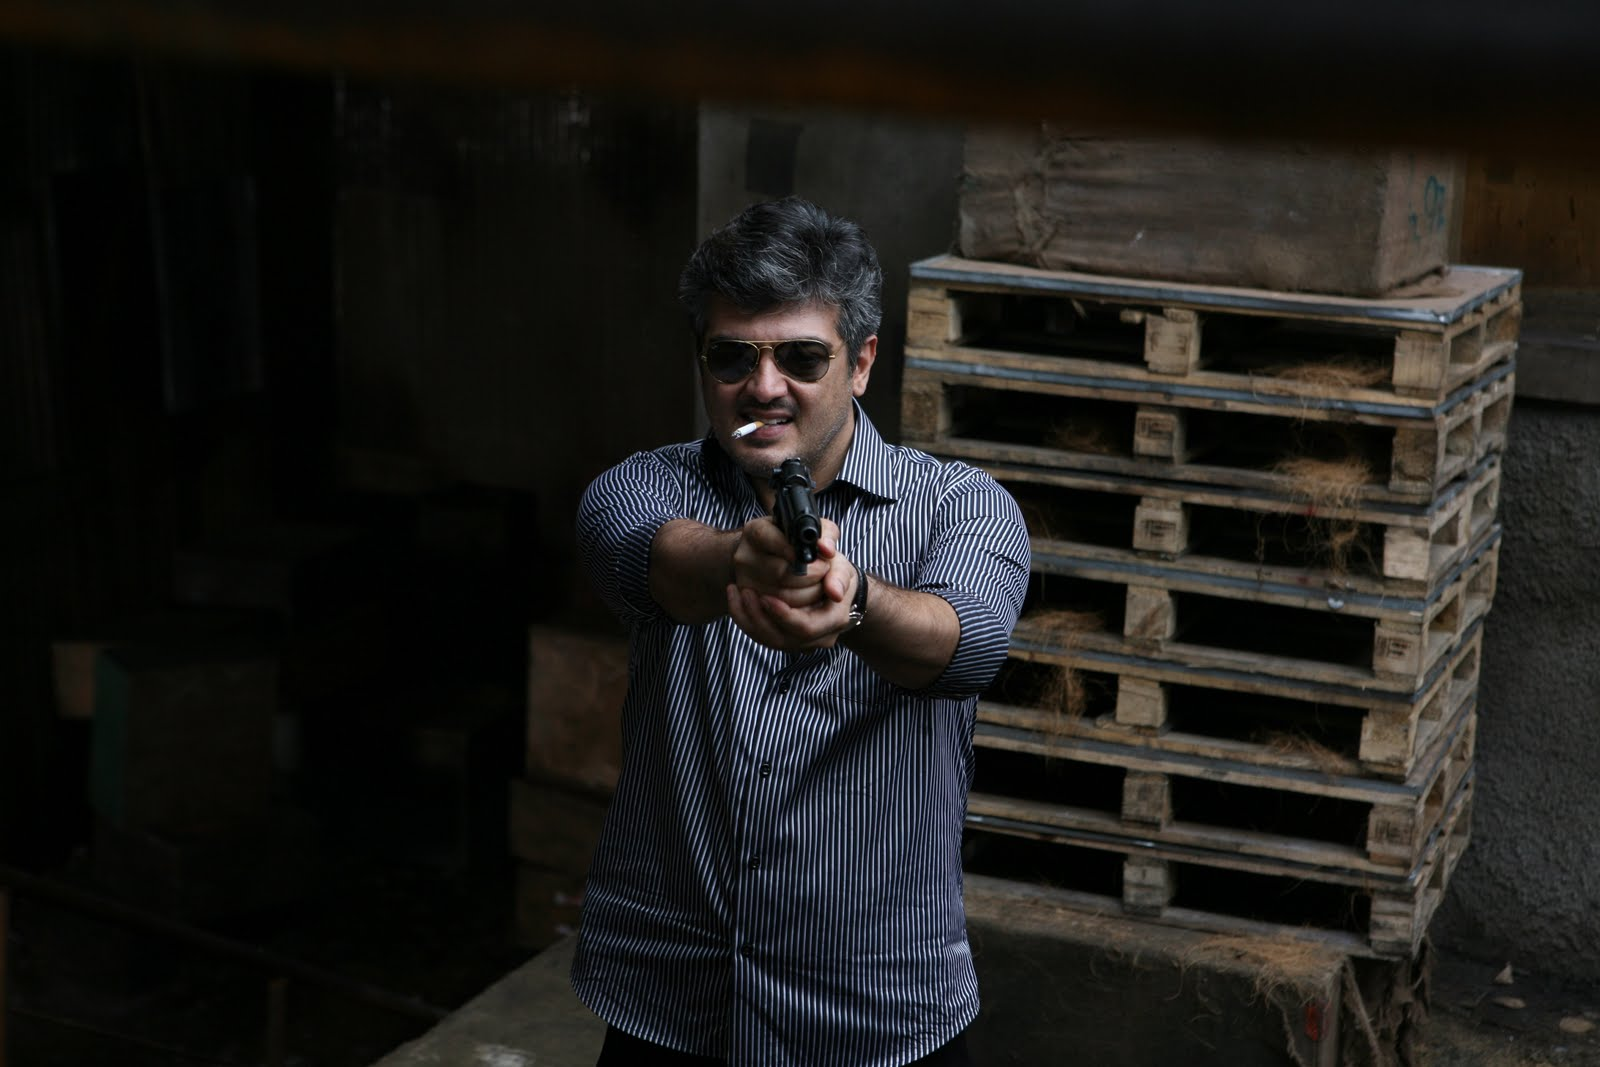 CLICK ON THE IMAGE TO ENLARGEAjith Wallpaper Hd